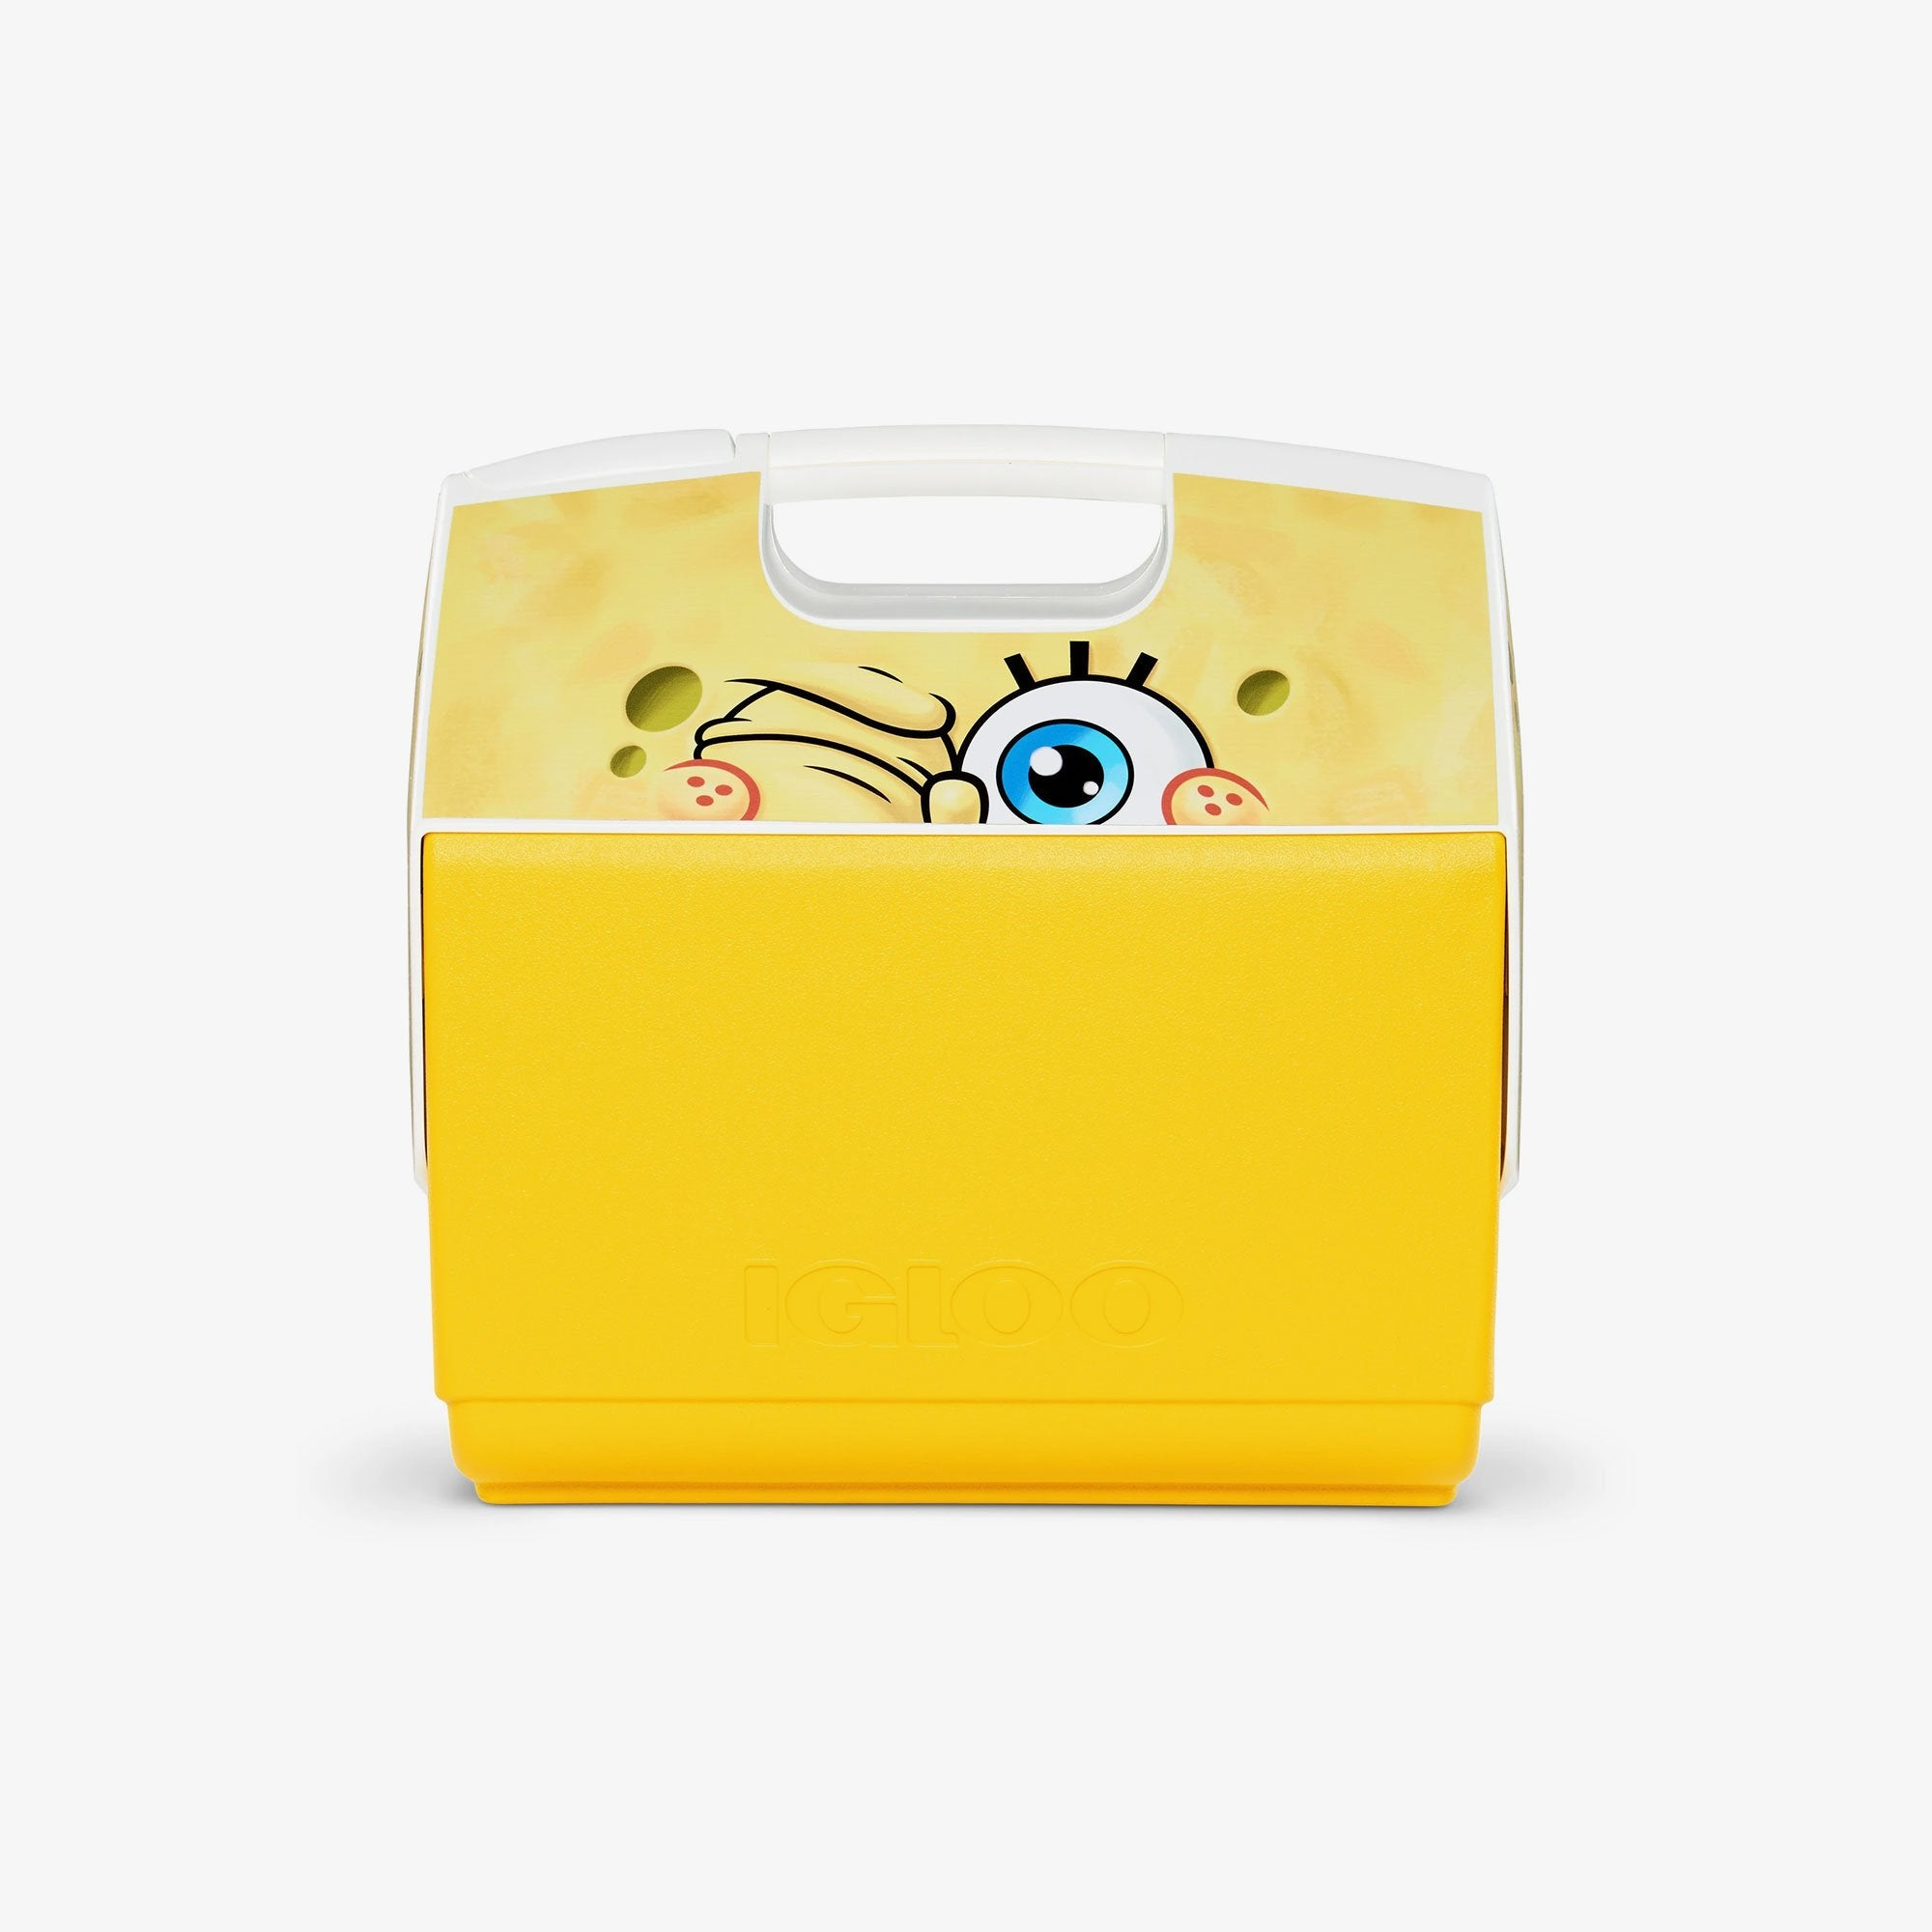 Large View | Spongebob Playmate Elite Limited Edition Wink 16 Qt Cooler